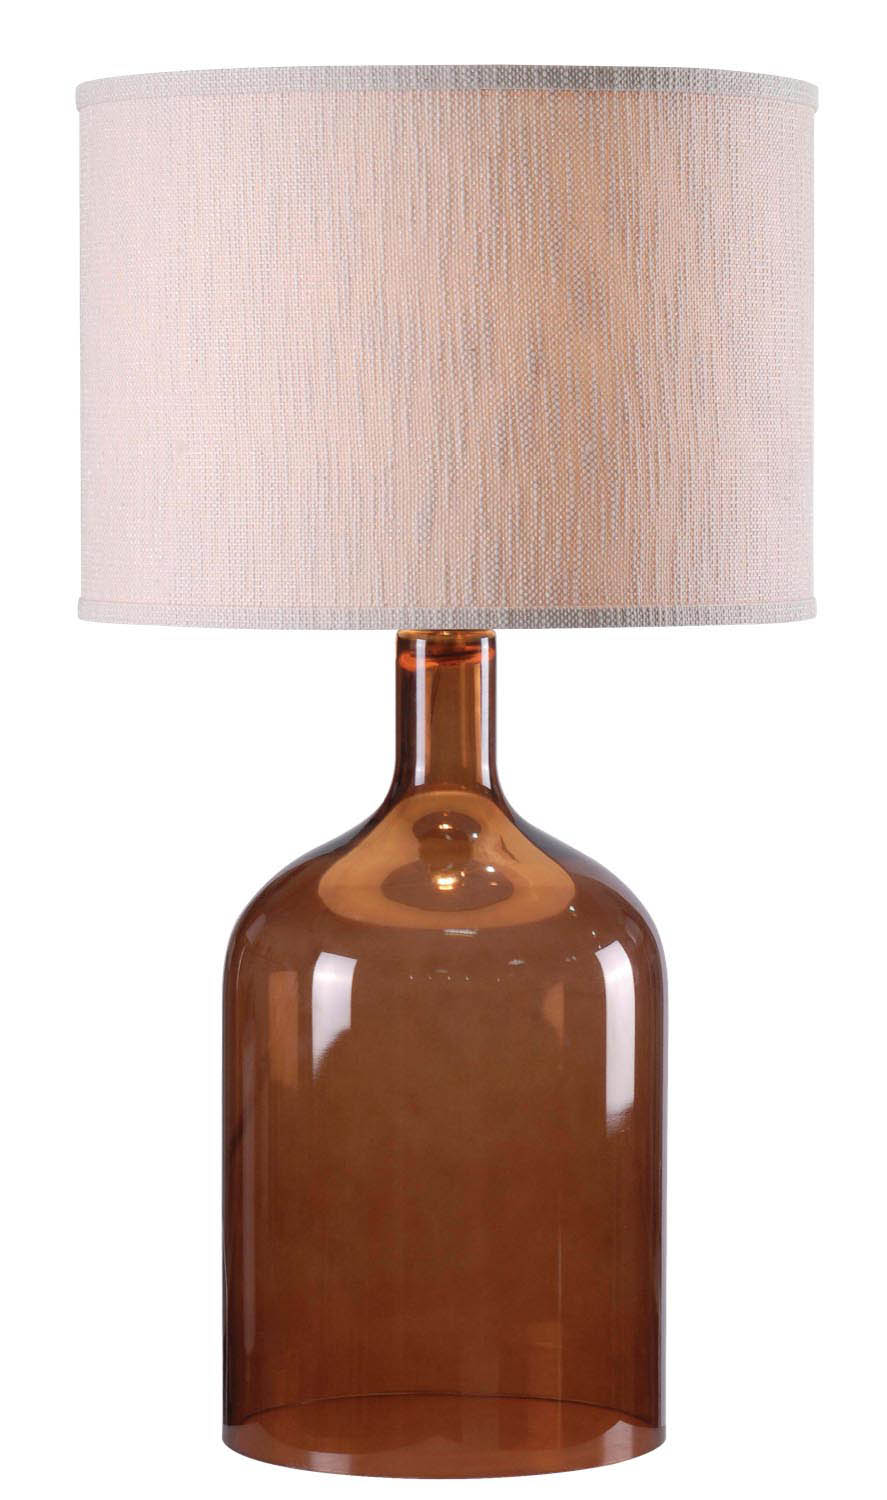 Kenroy Lighting Capri amber glass lamp 32261AMB.jpg